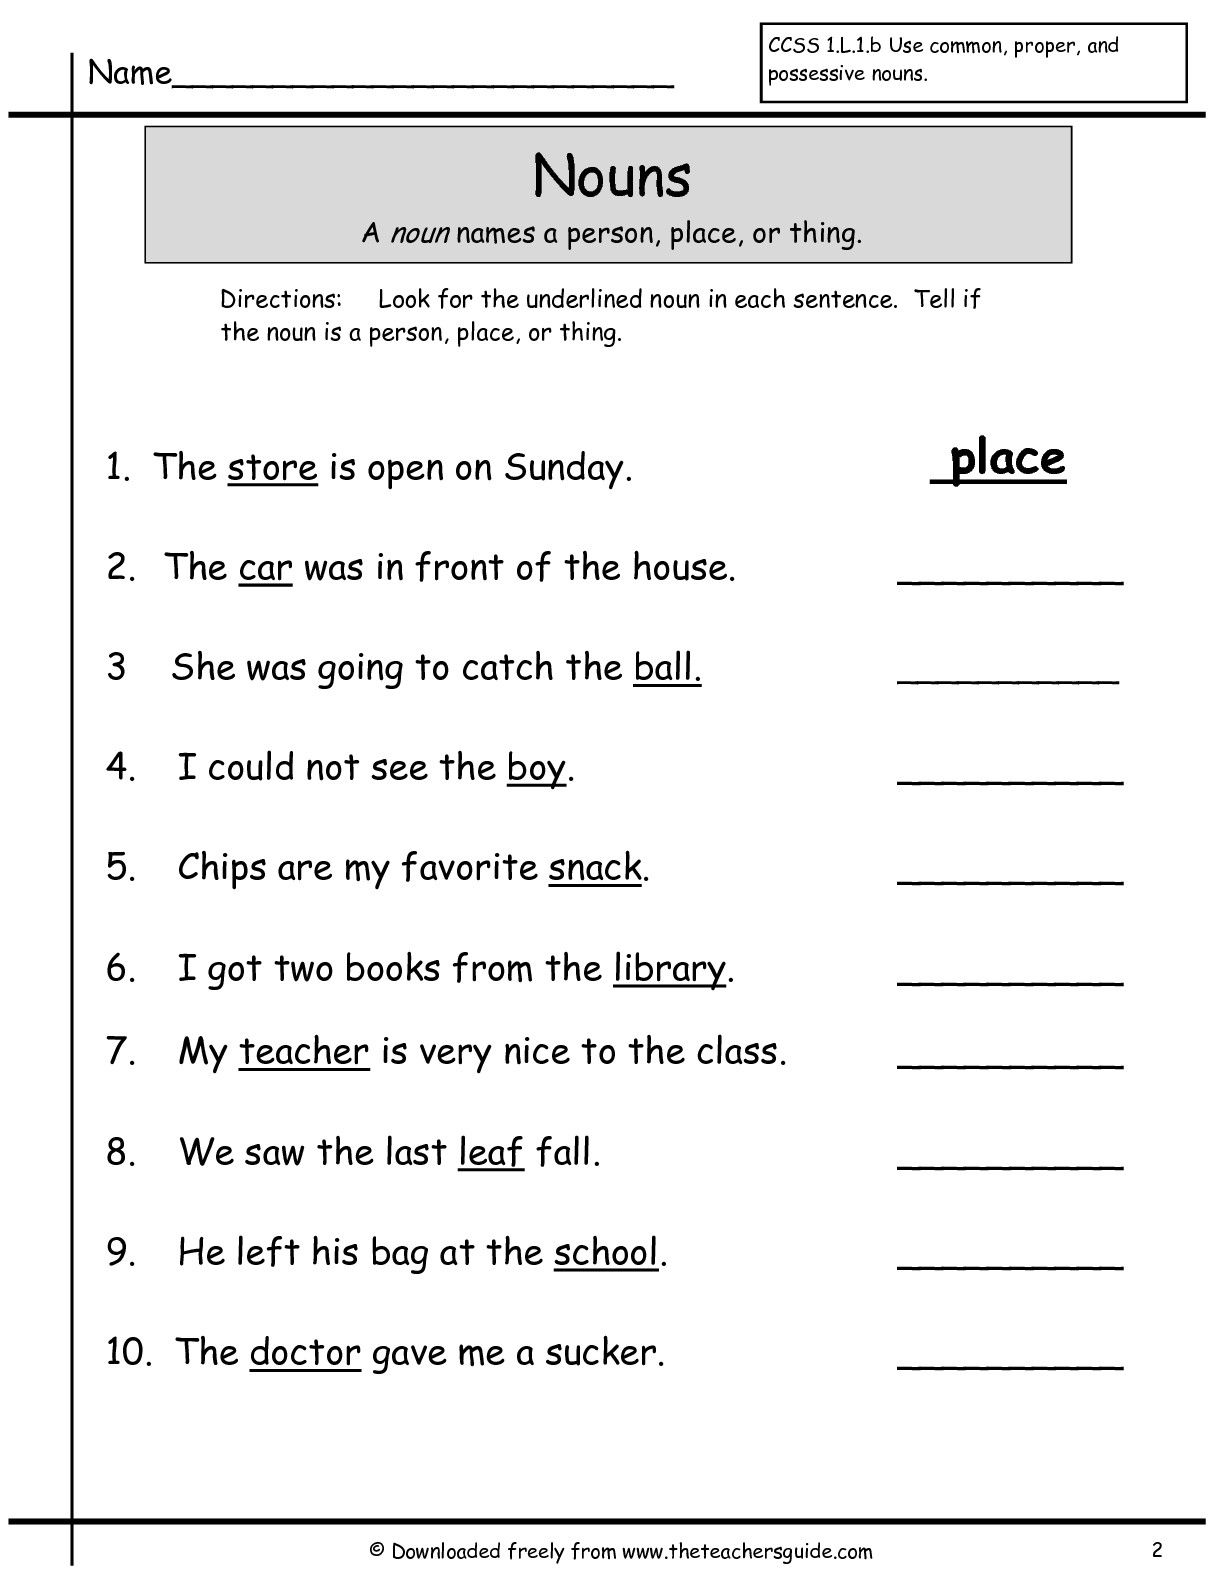 First grade grammar worksheets nouns